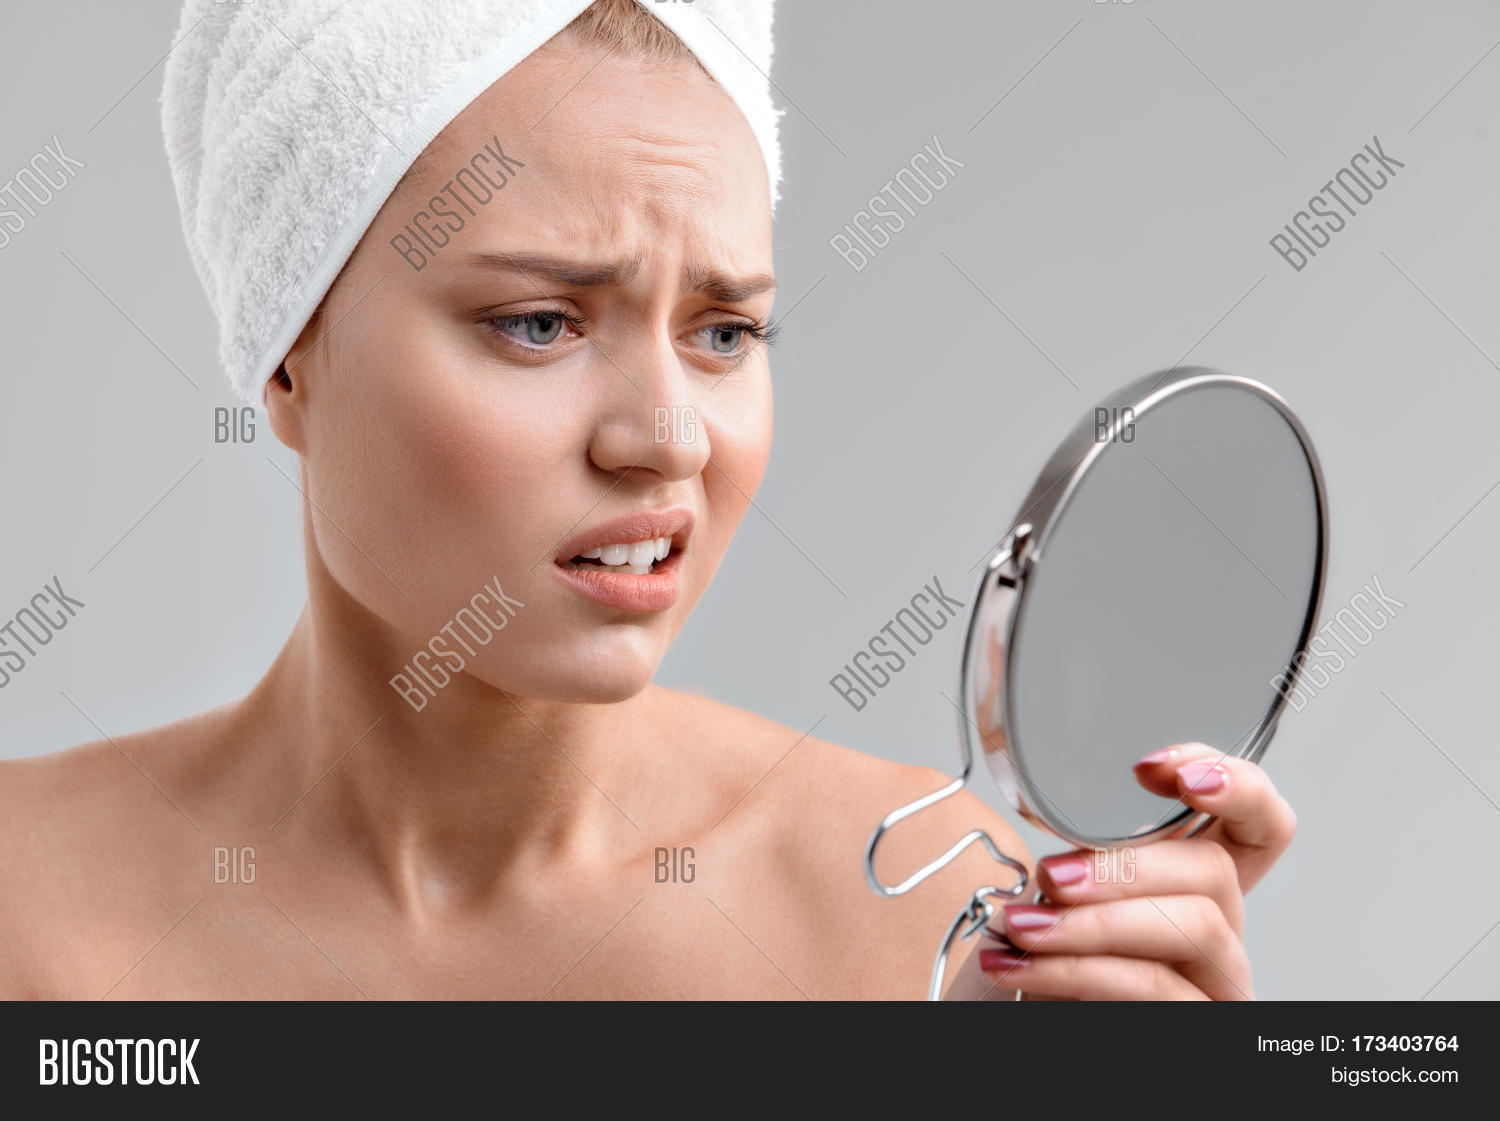 Woman Holding Mirror Throughout Upset Young Woman Is Holding Mirror And Looking At Her Face With Dissatisfaction Her Head Young Woman Image u0026 Photo free Trial Bigstock